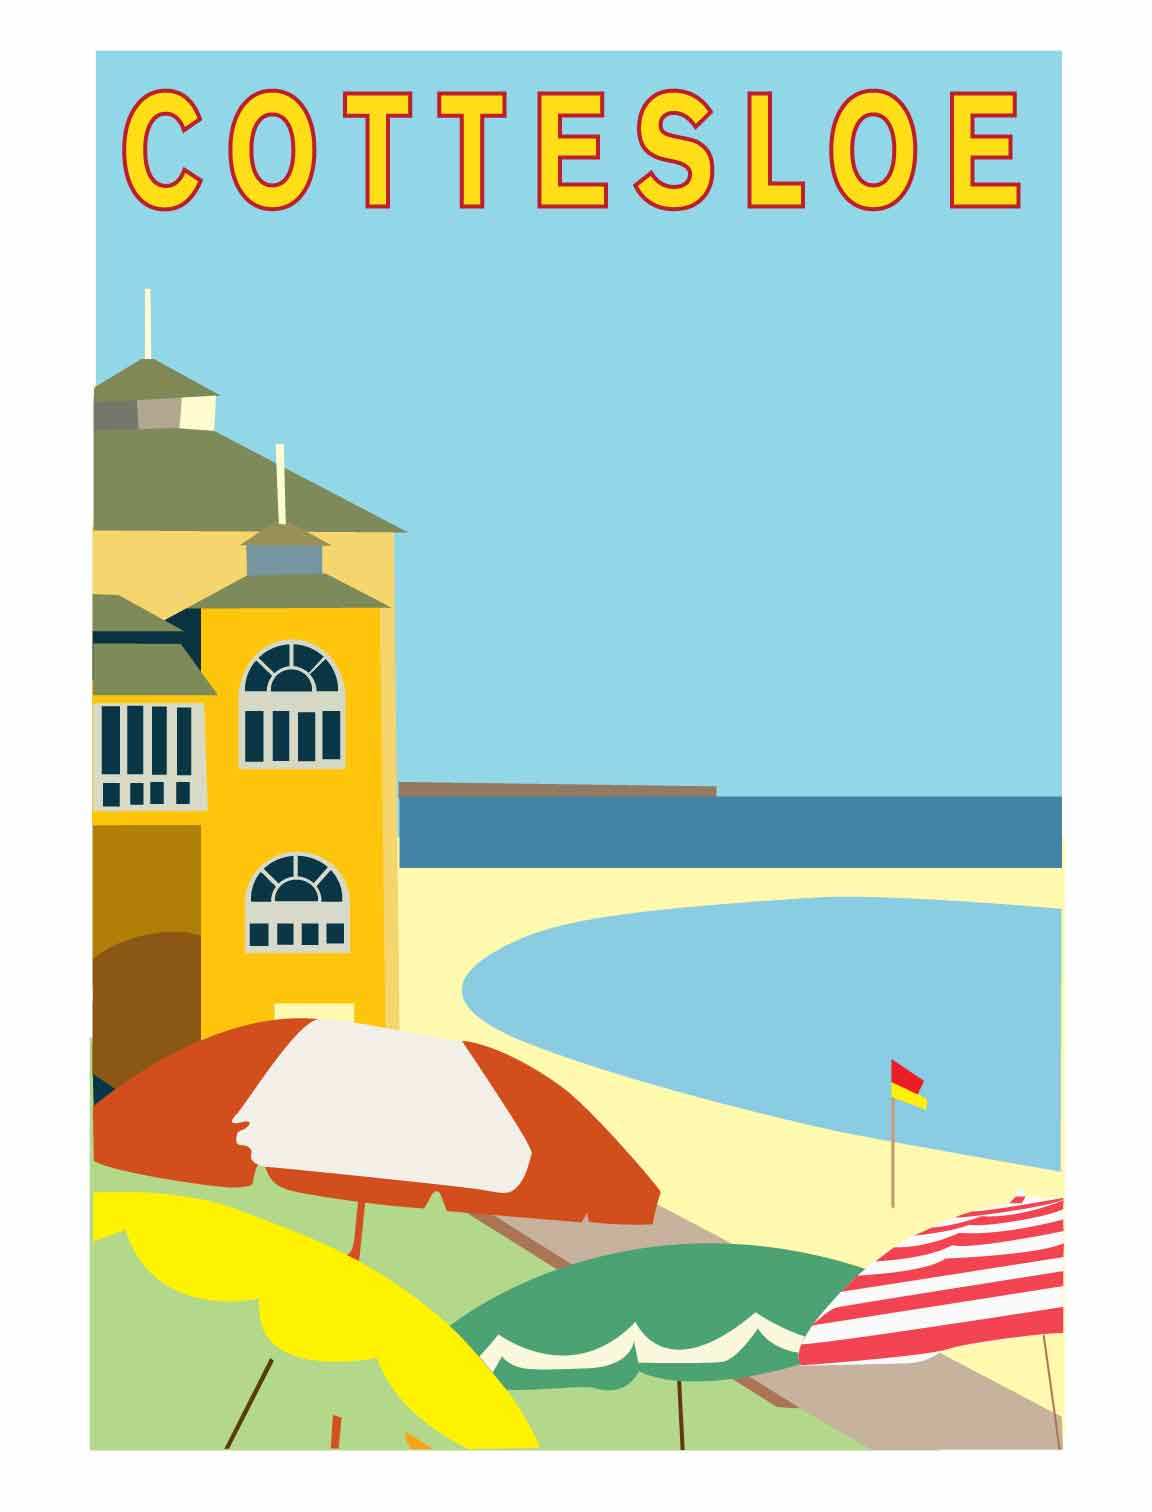 Final version - Cottesloe poster reproduction - image 2 - student project